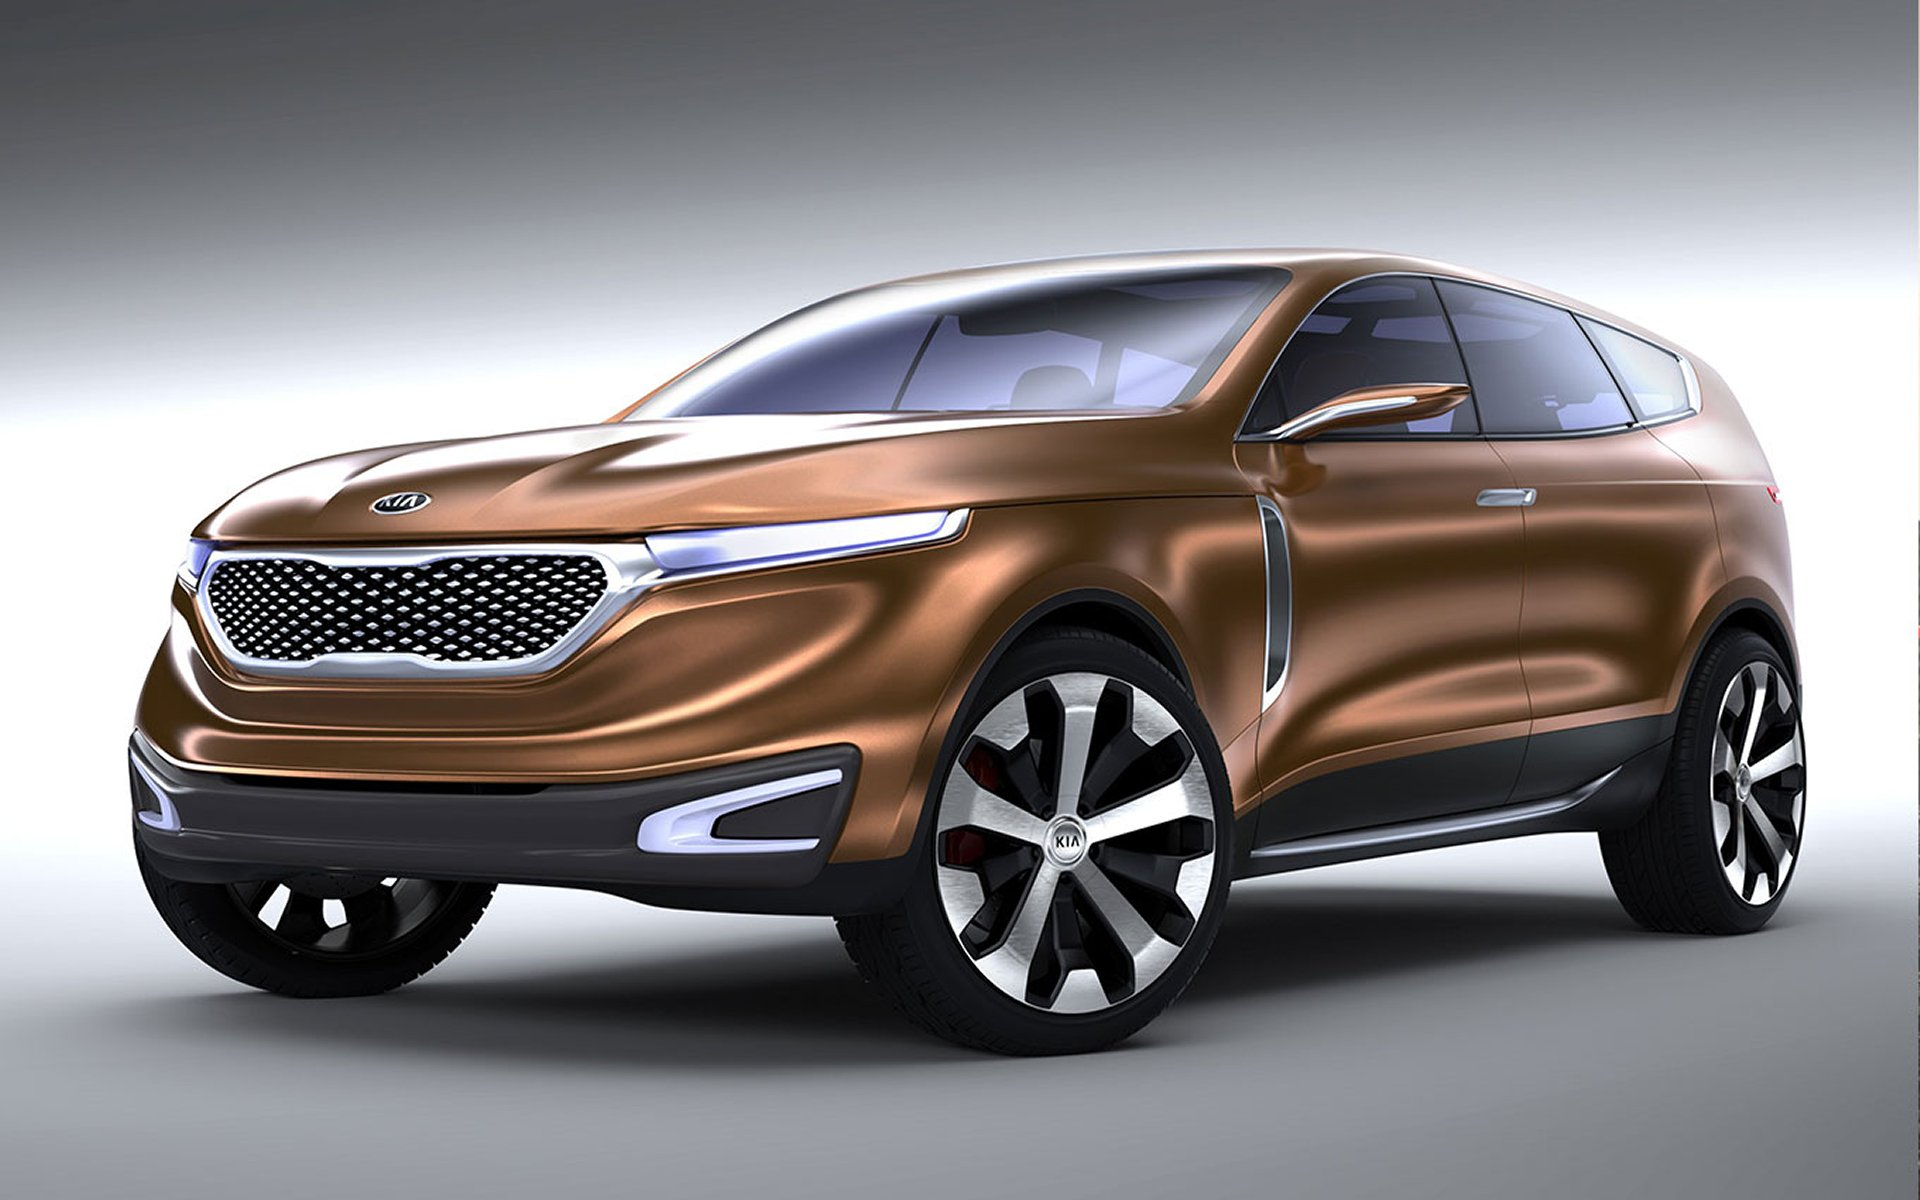 Colorado Dealer - KIA CROSS GT Concept's Overview